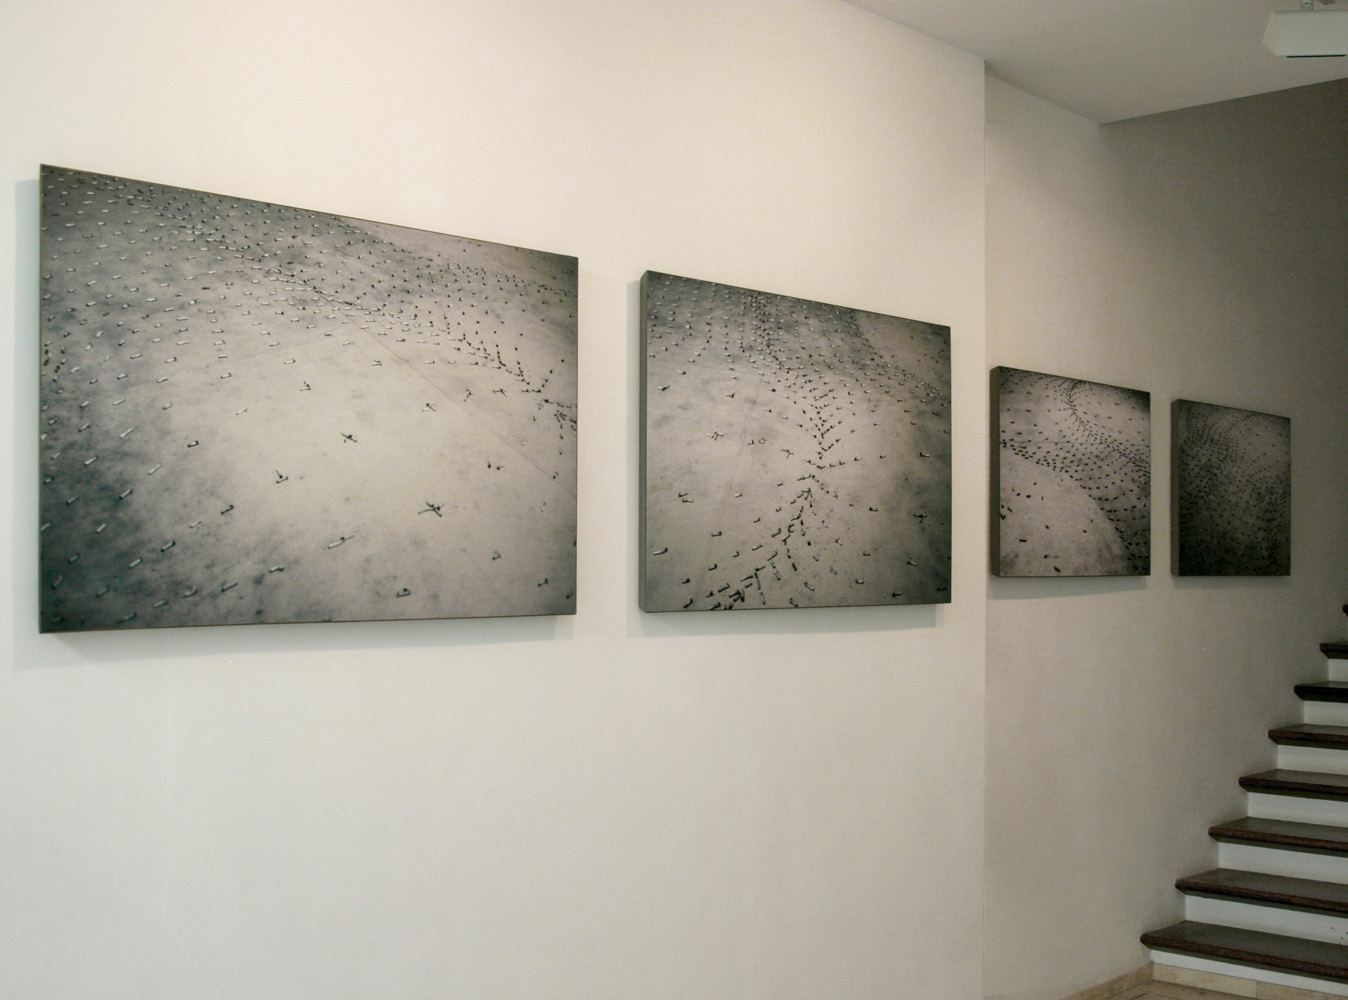 Exhibition view Escombrar in the Galeria Maior of Pollença, 2009